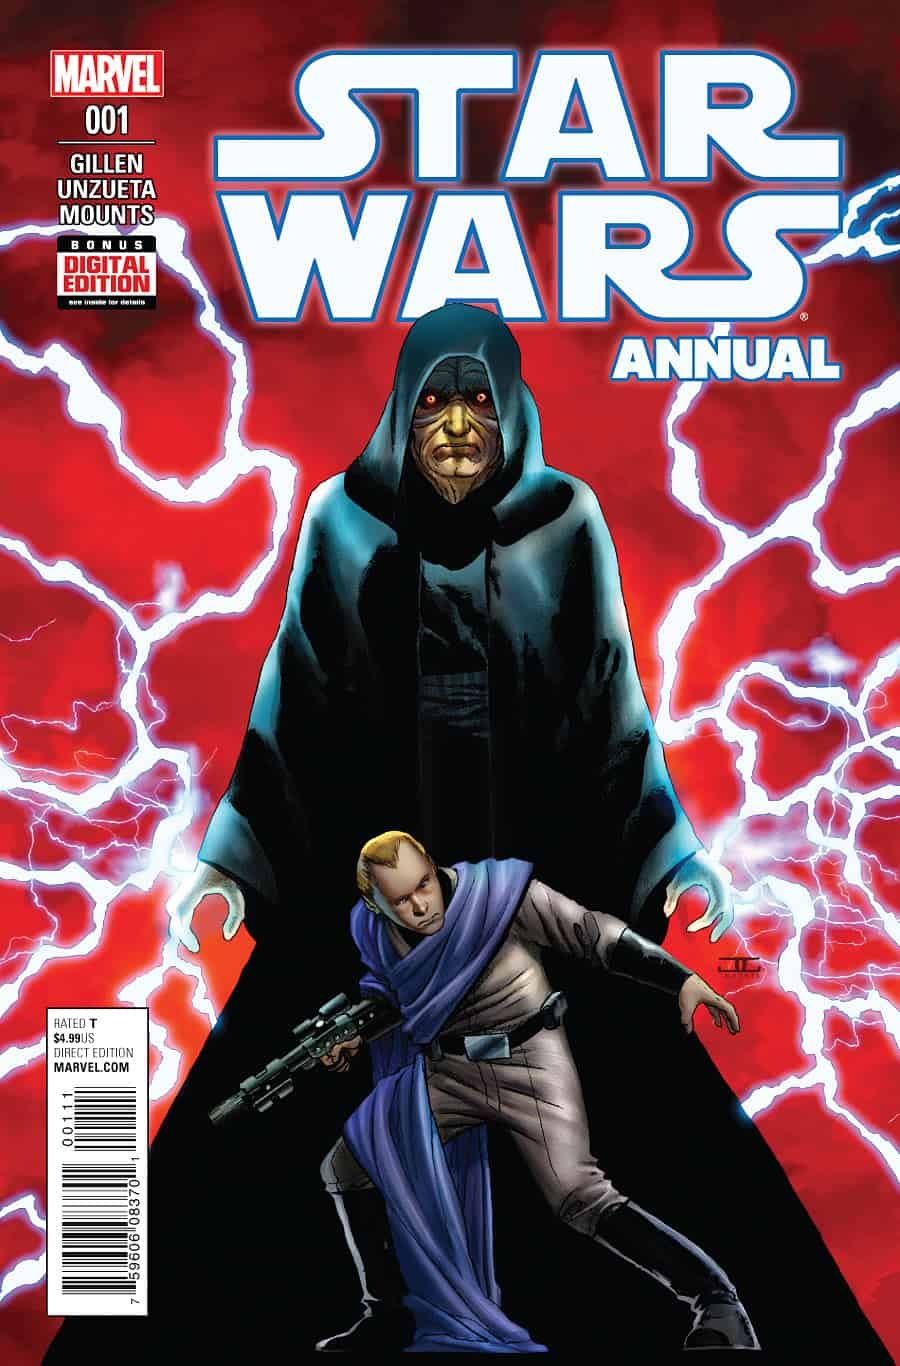 Star Wars Annual #1 - Cover